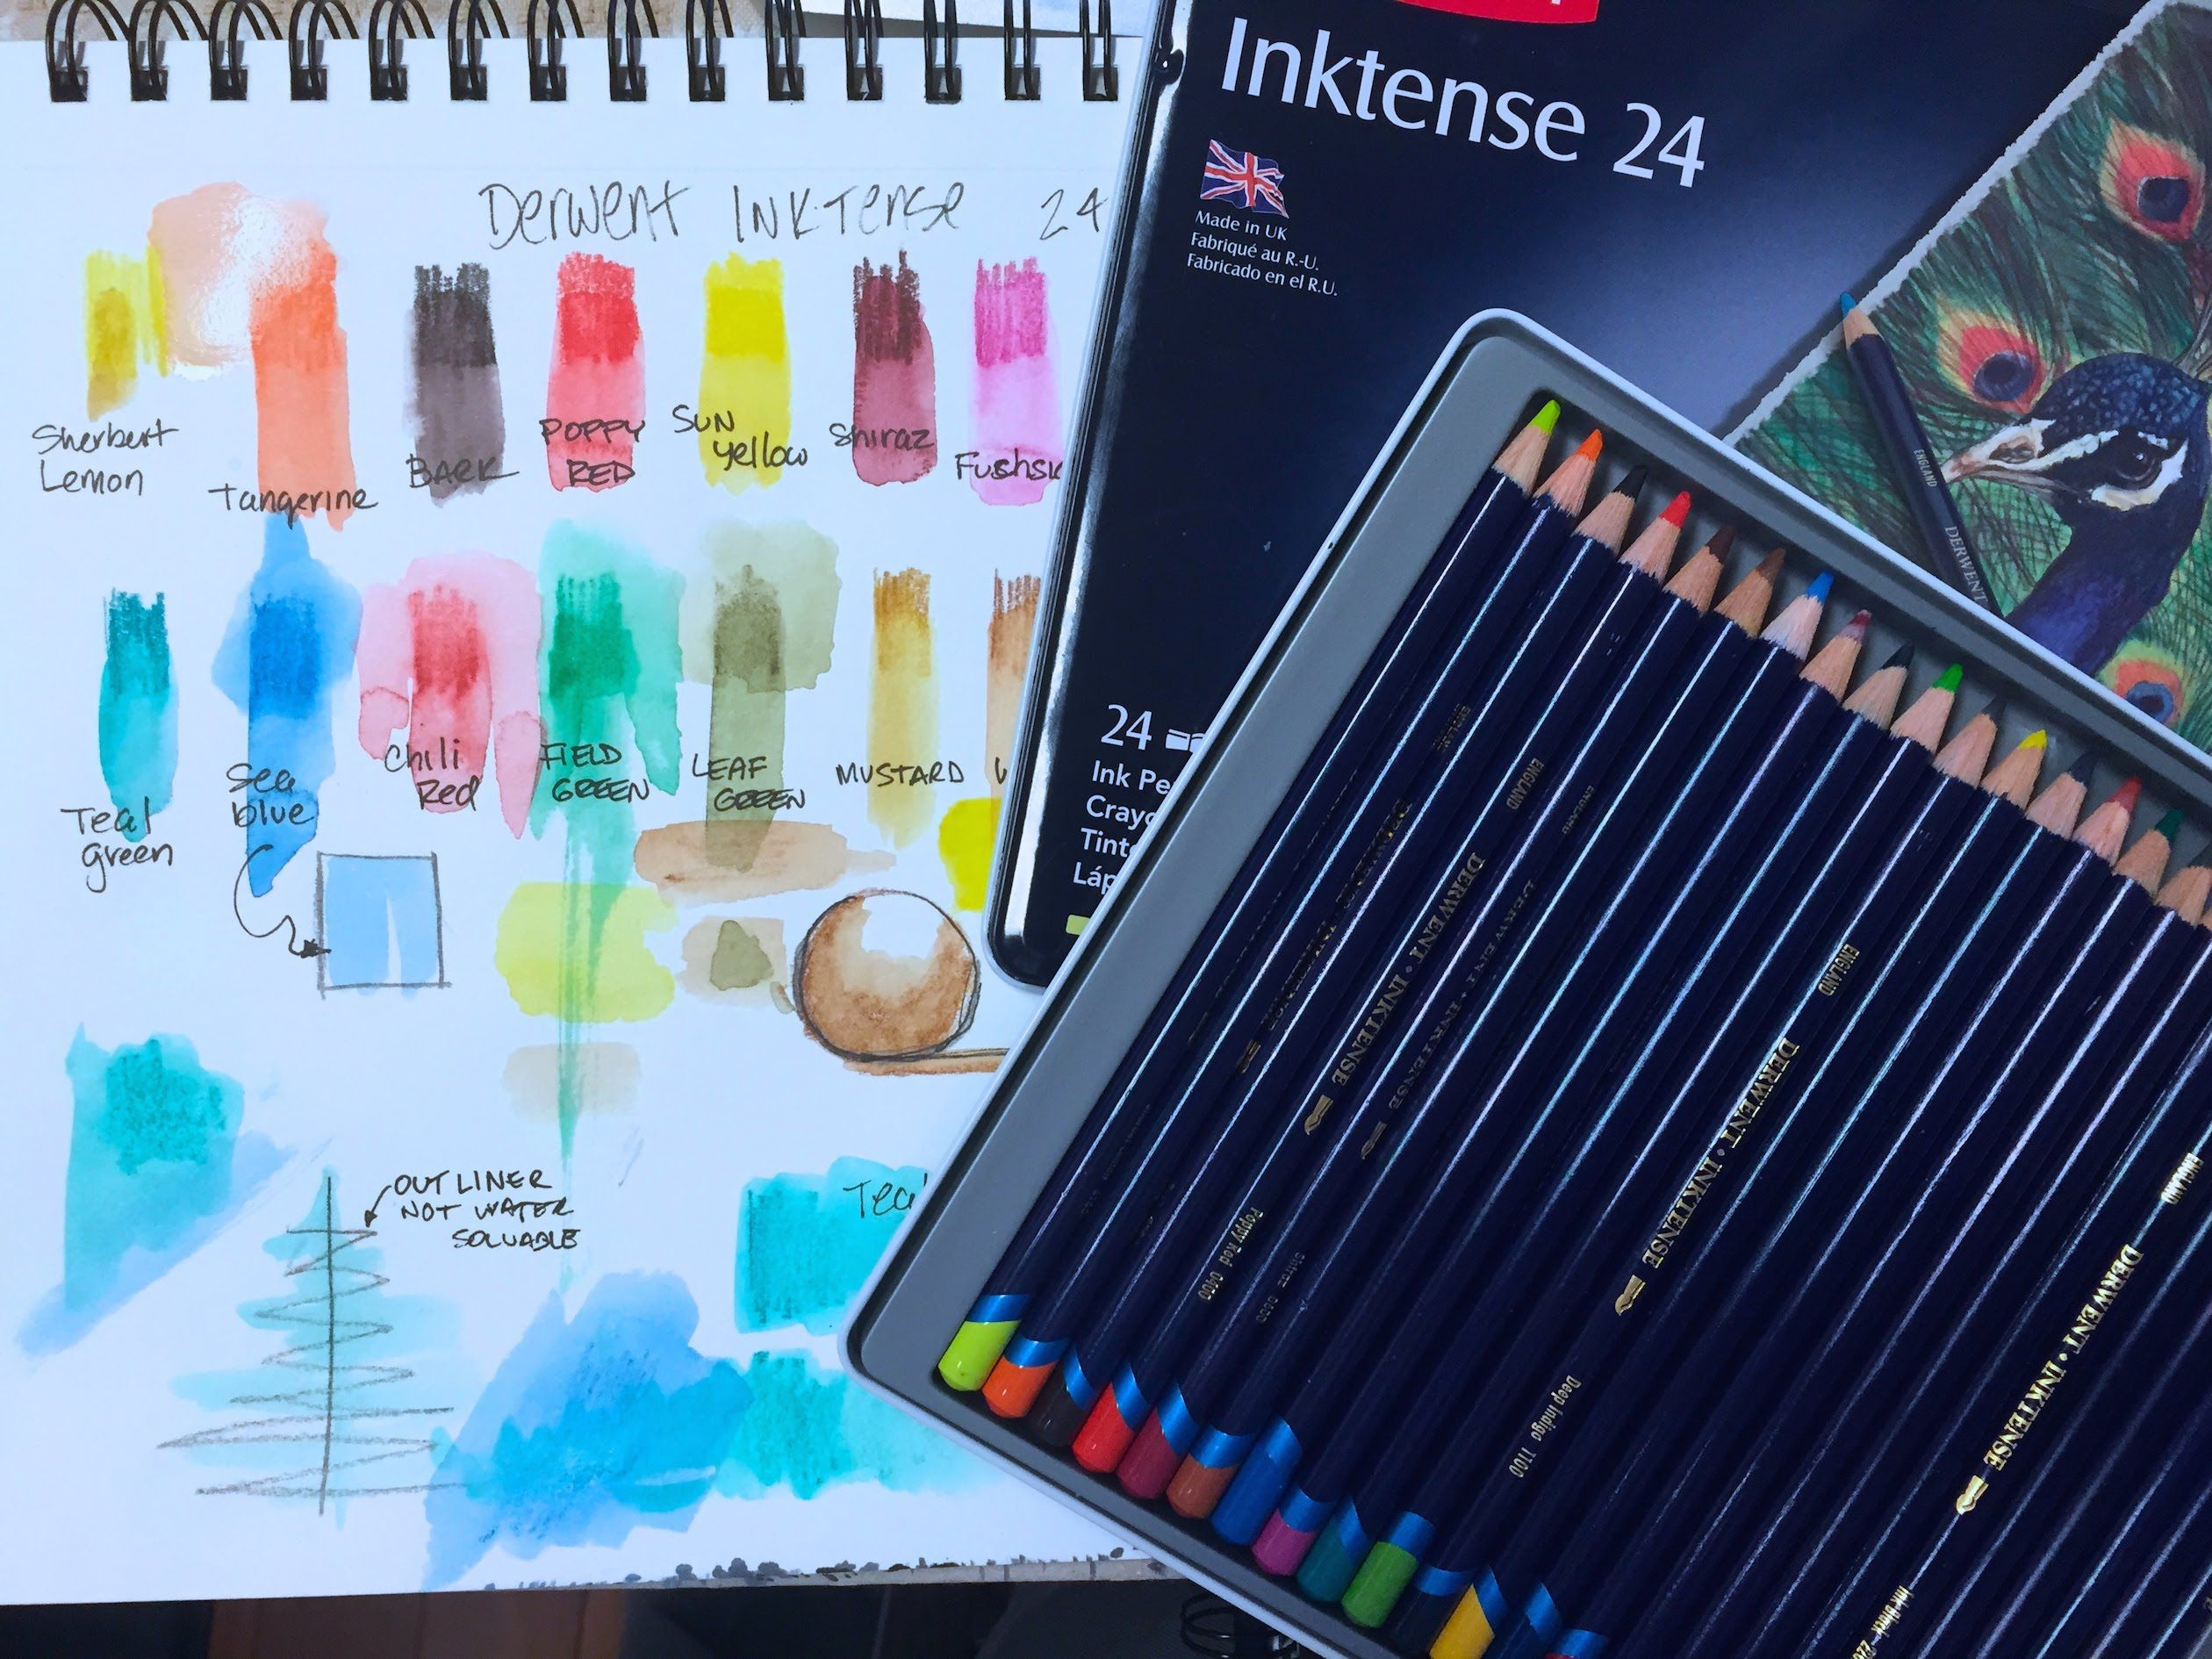 Derwent Inktense Pencil Review Watercolor Kit